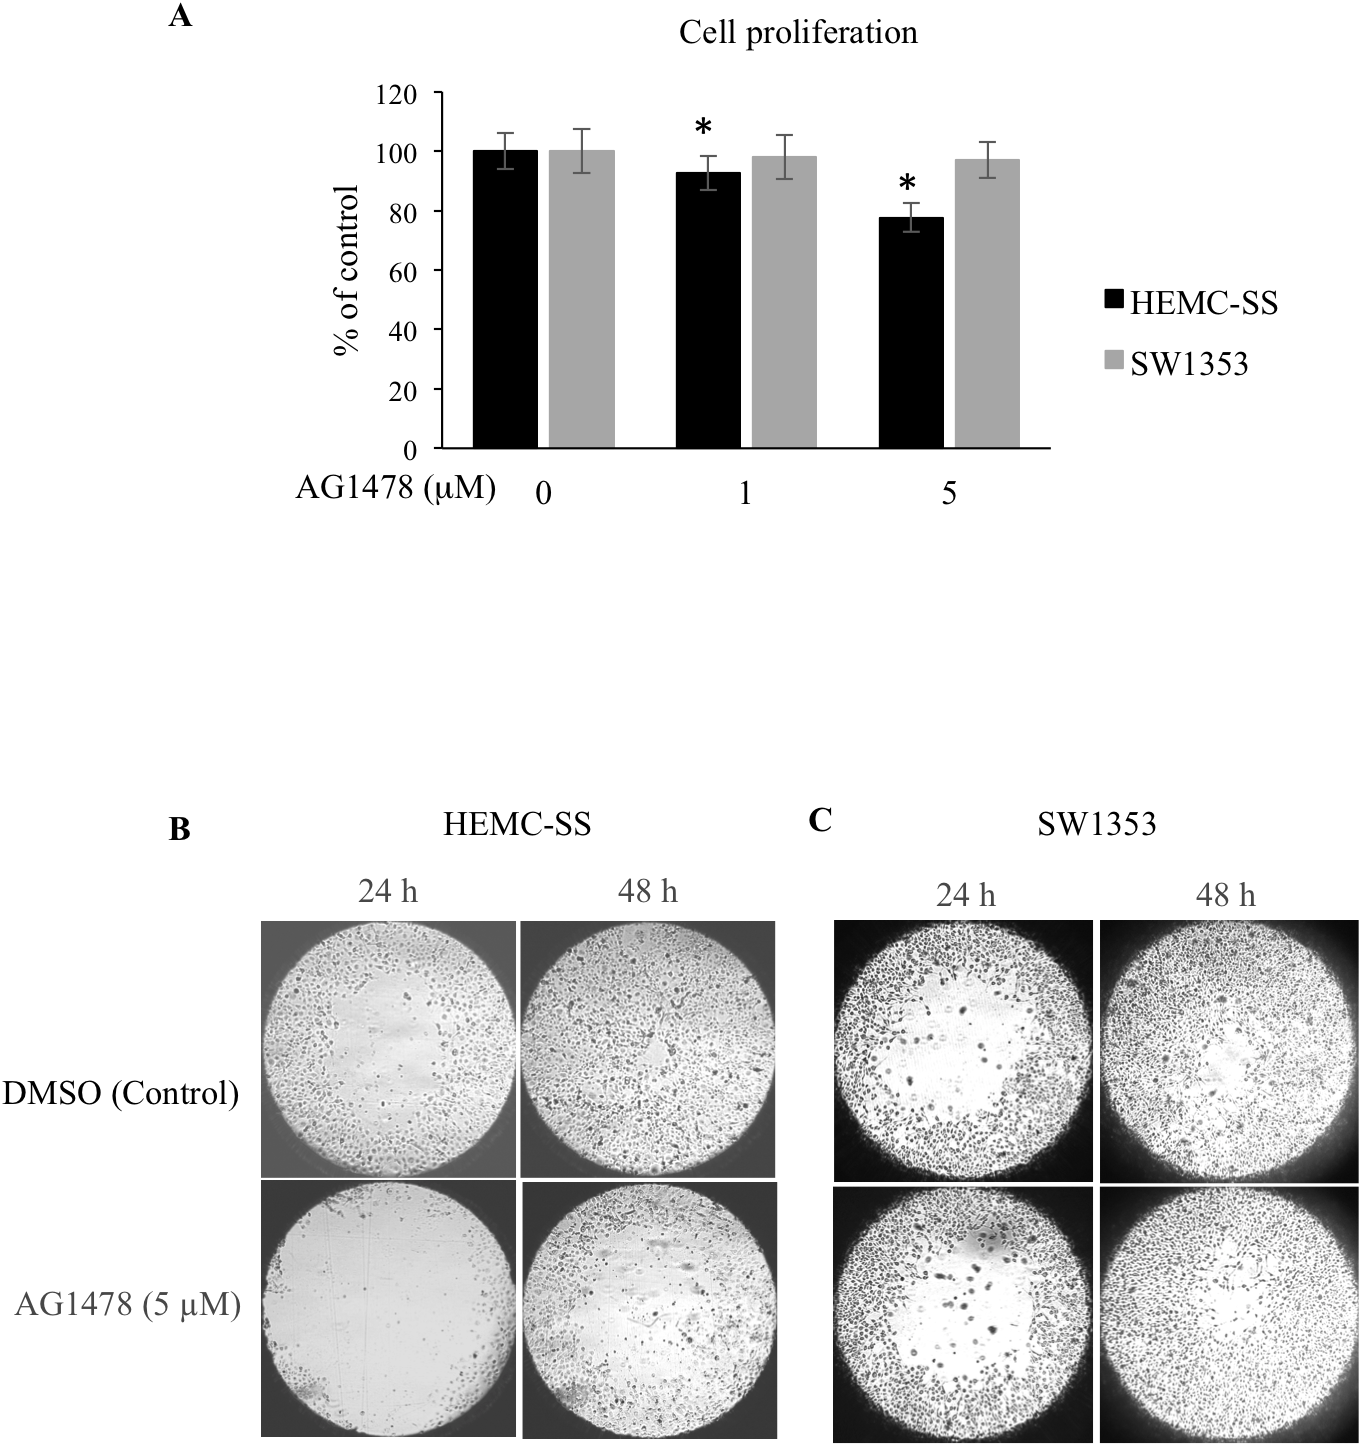 AG1478 reduces proliferation and migration of chondrosarcoma cells.